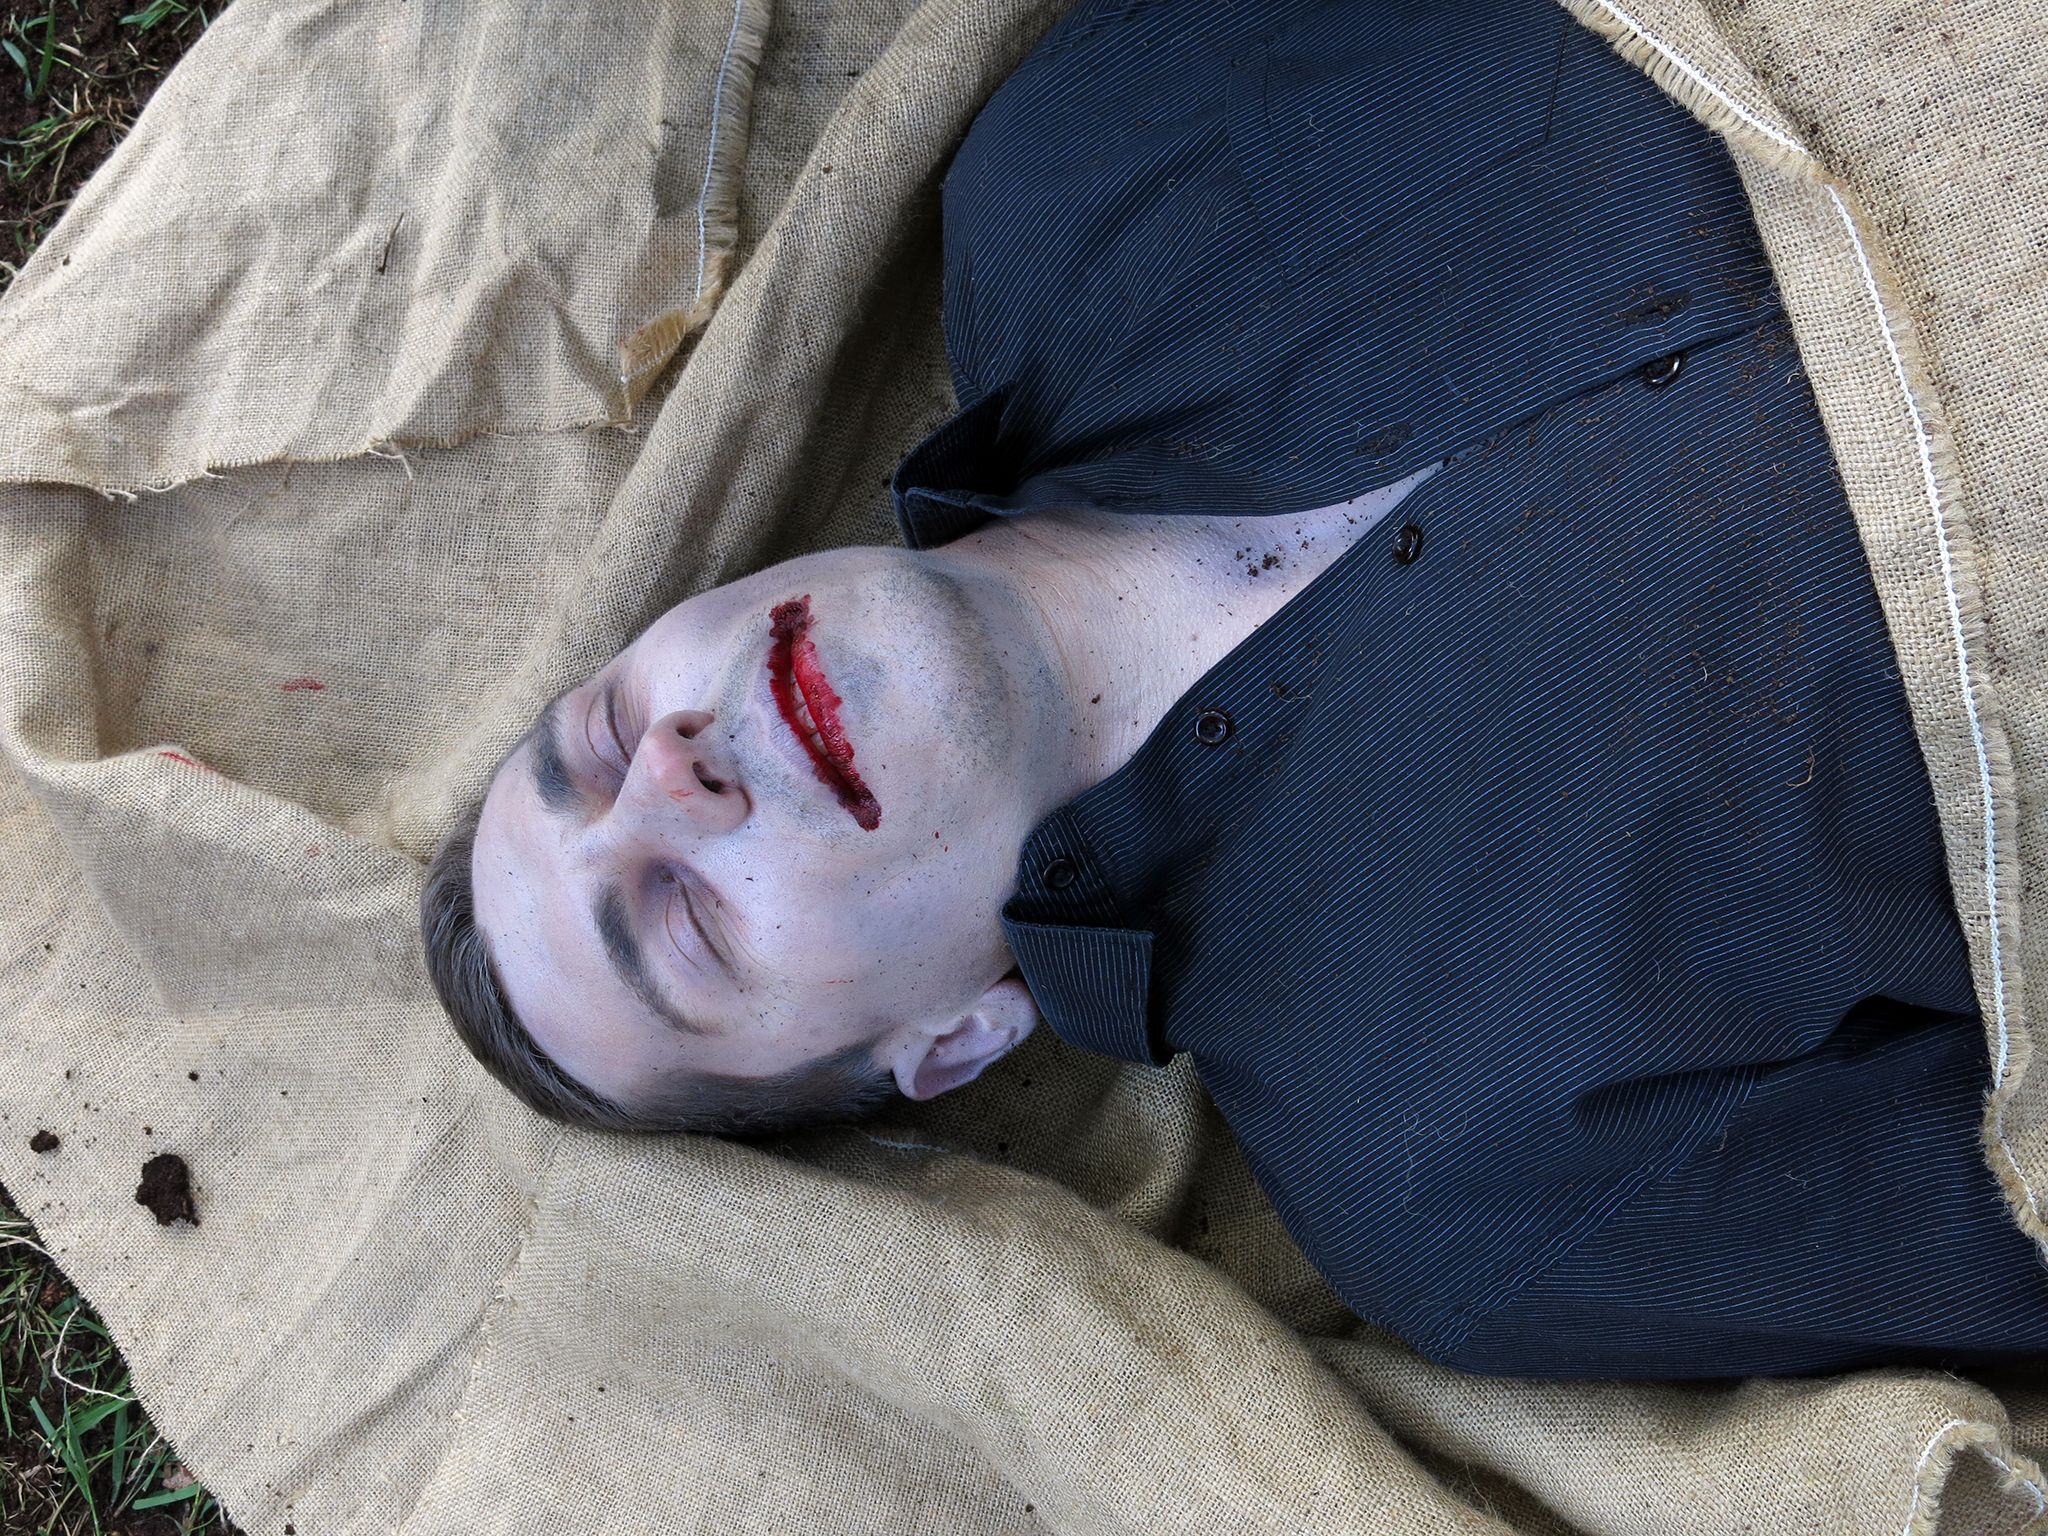 Drama Reconstruction: The exhumed body during the ritual of putting to rest a strigoi. 